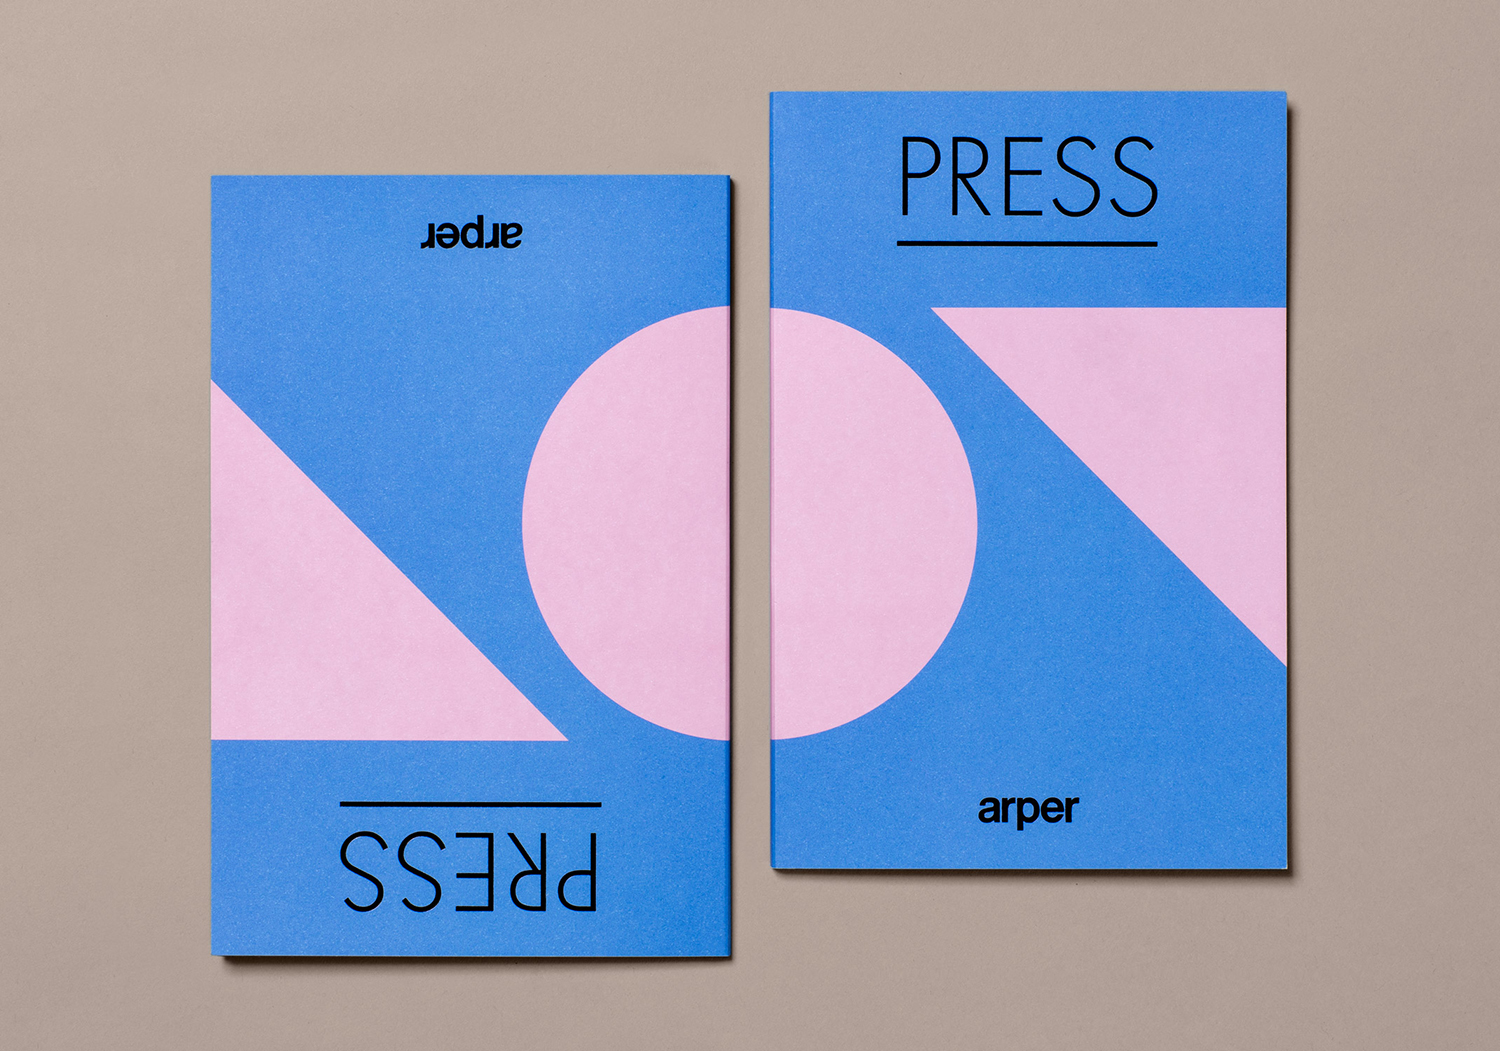 Graphic identity, catalogues, notebooks, press packs, tote bags and newsprint by Clase bcn for Italian furniture company Arper